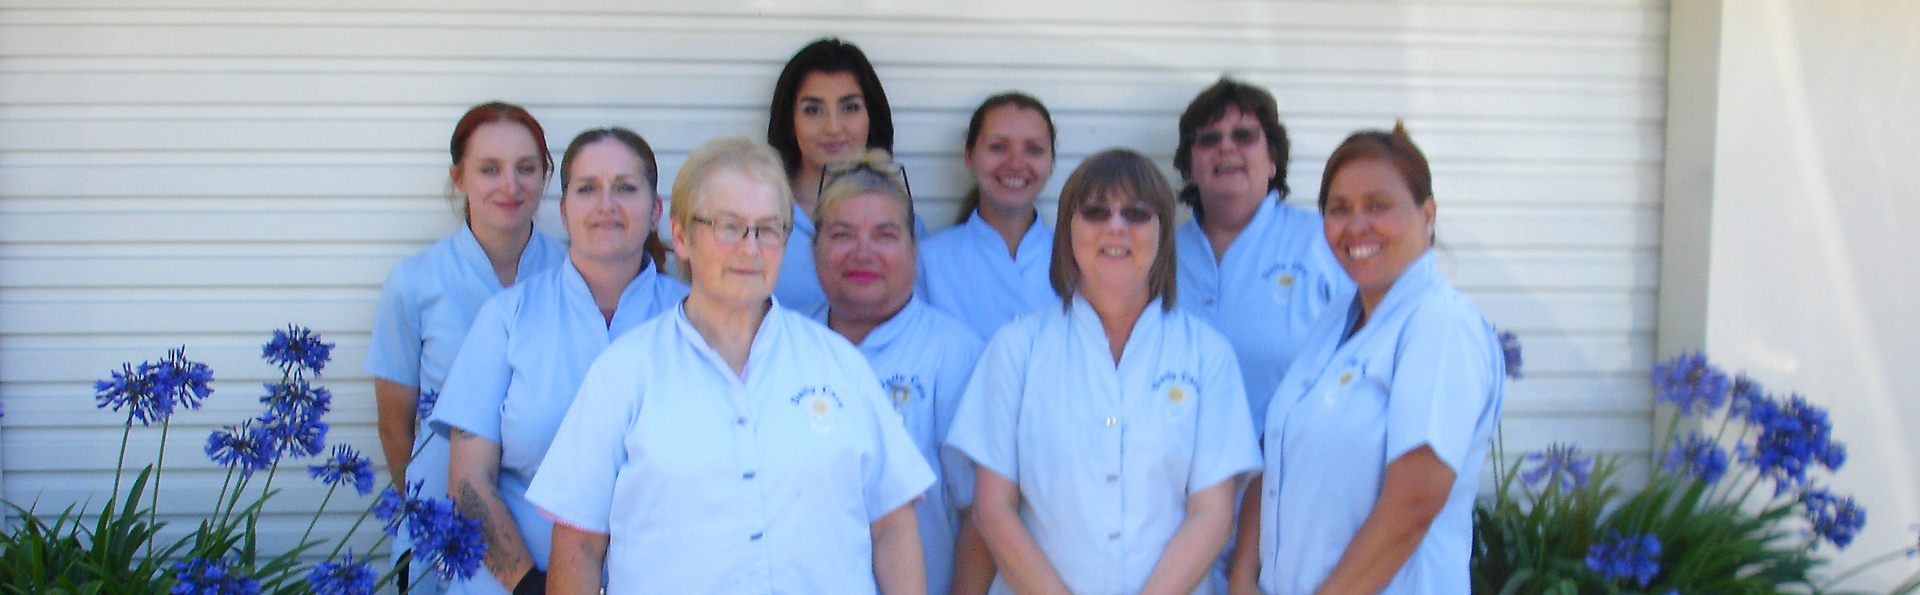 The Daily Care Agency Team